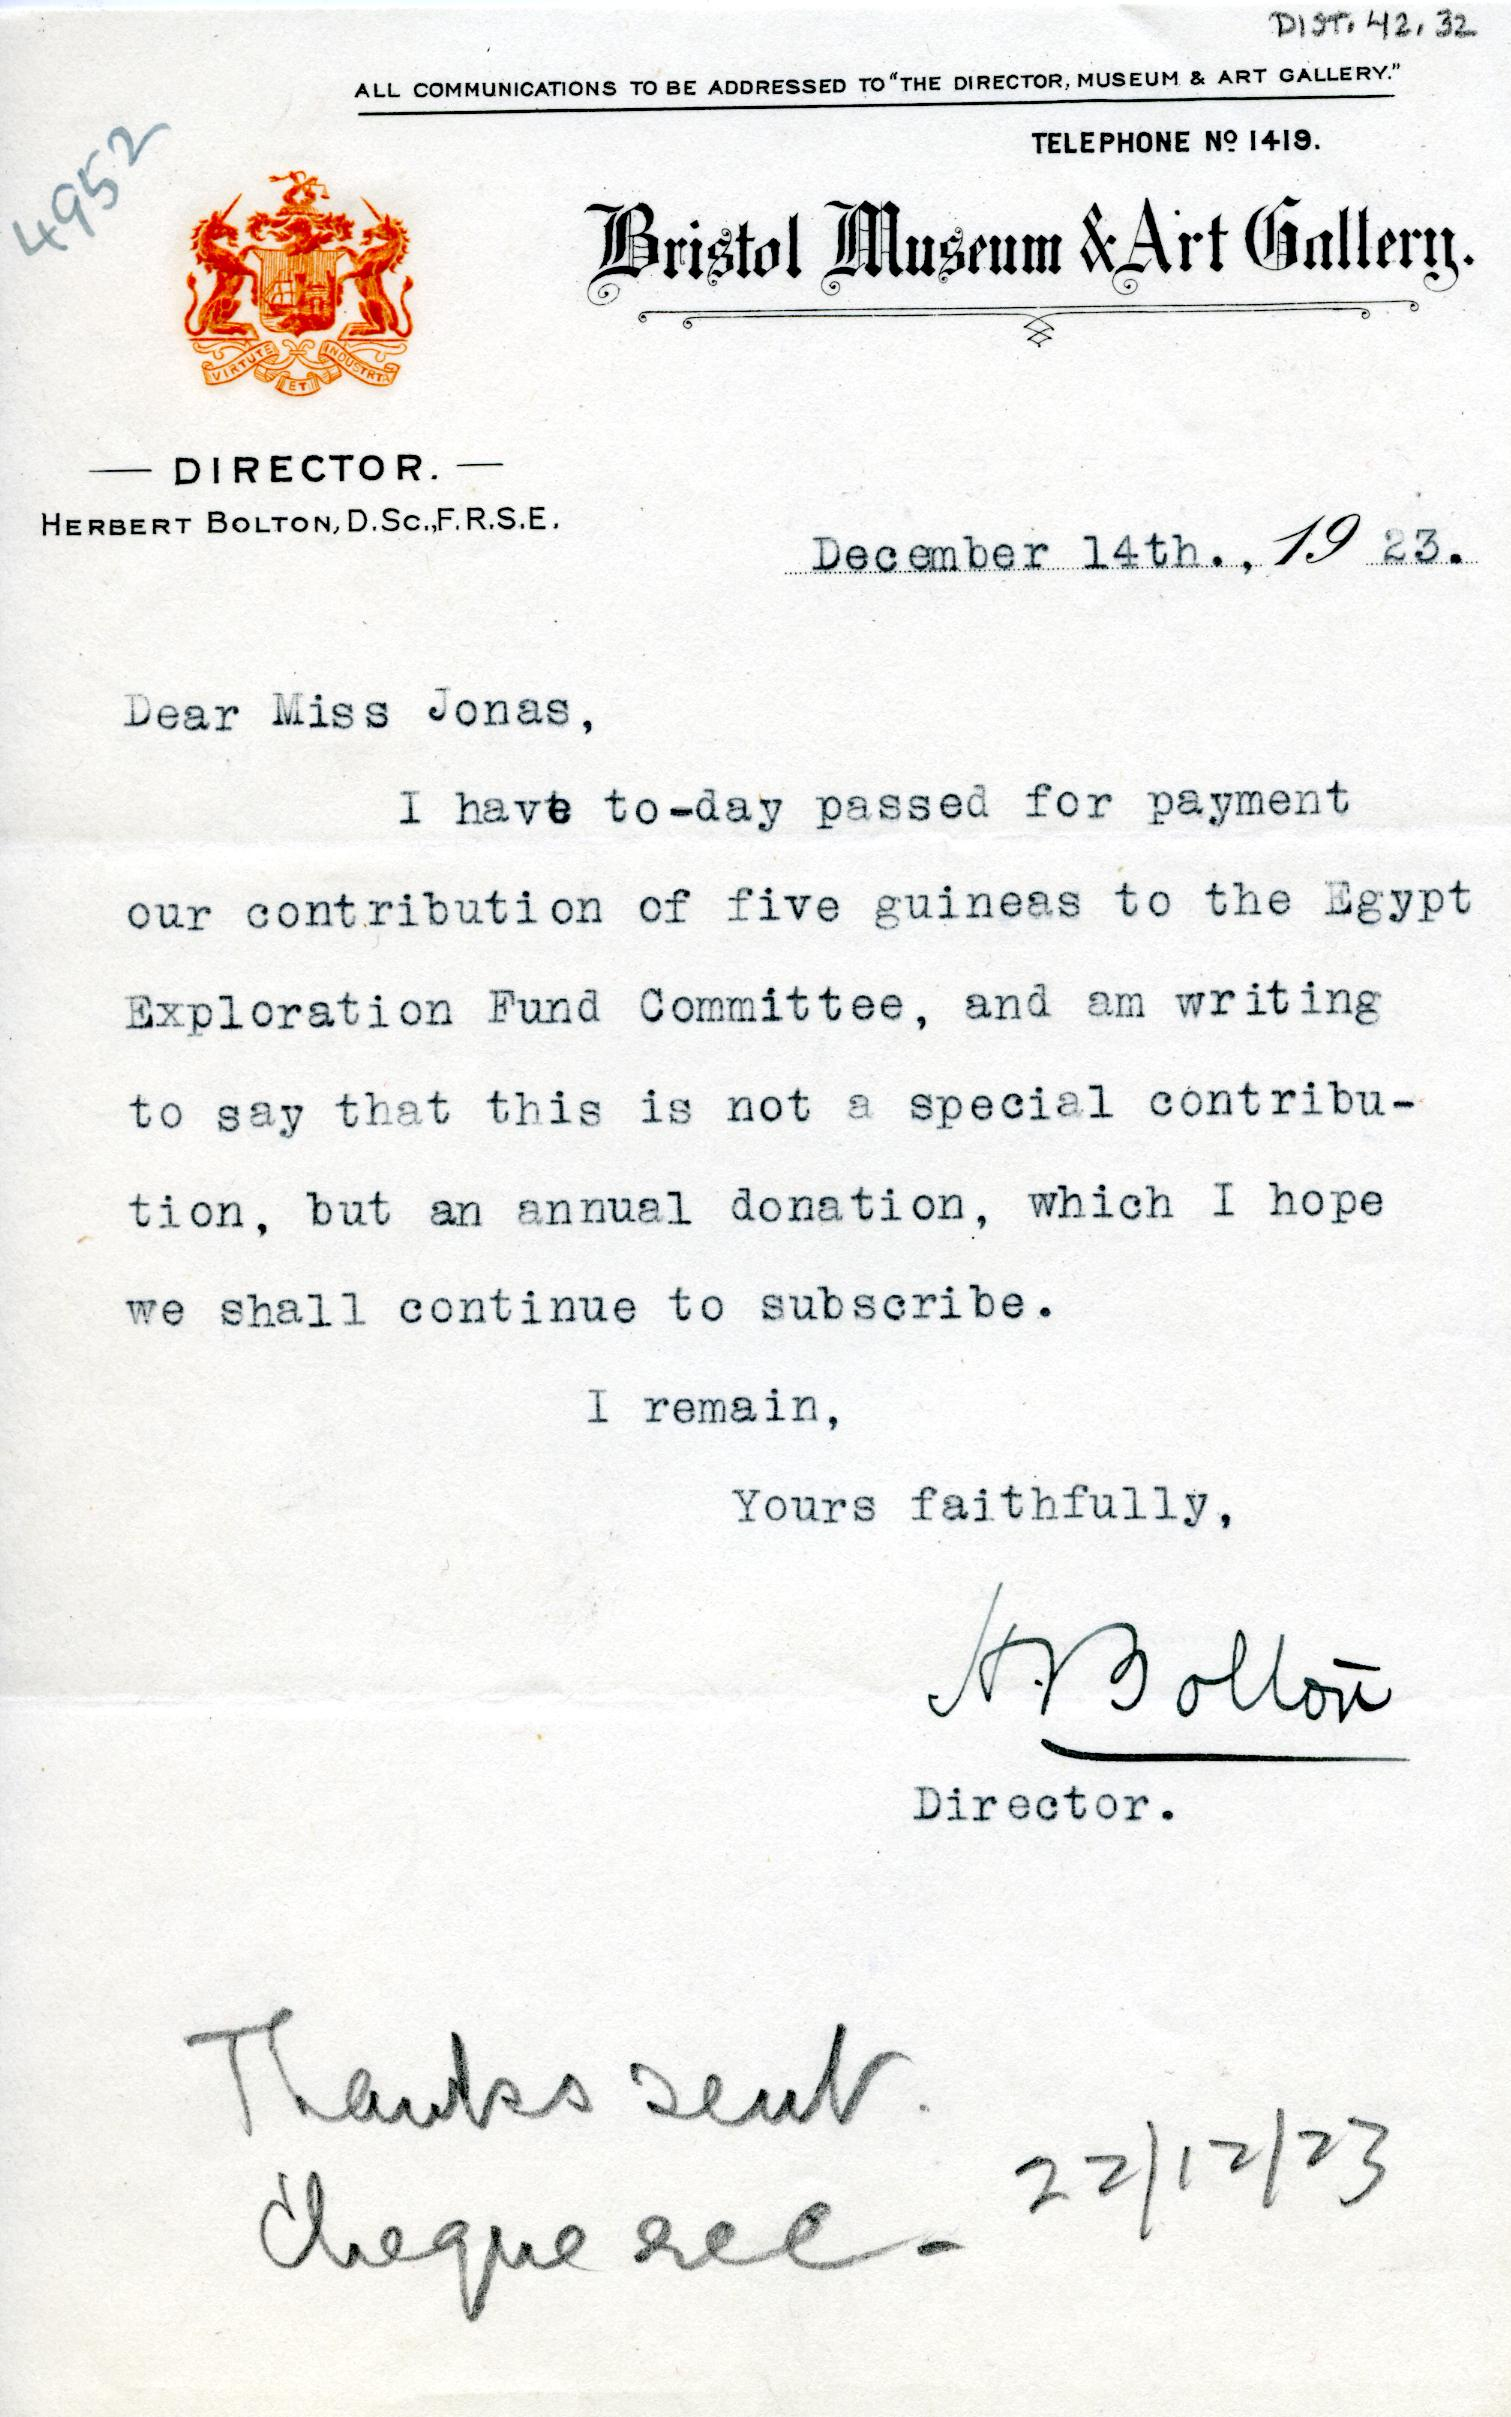 1922-71 Miscellaneous correspondence with museums DIST.42.32